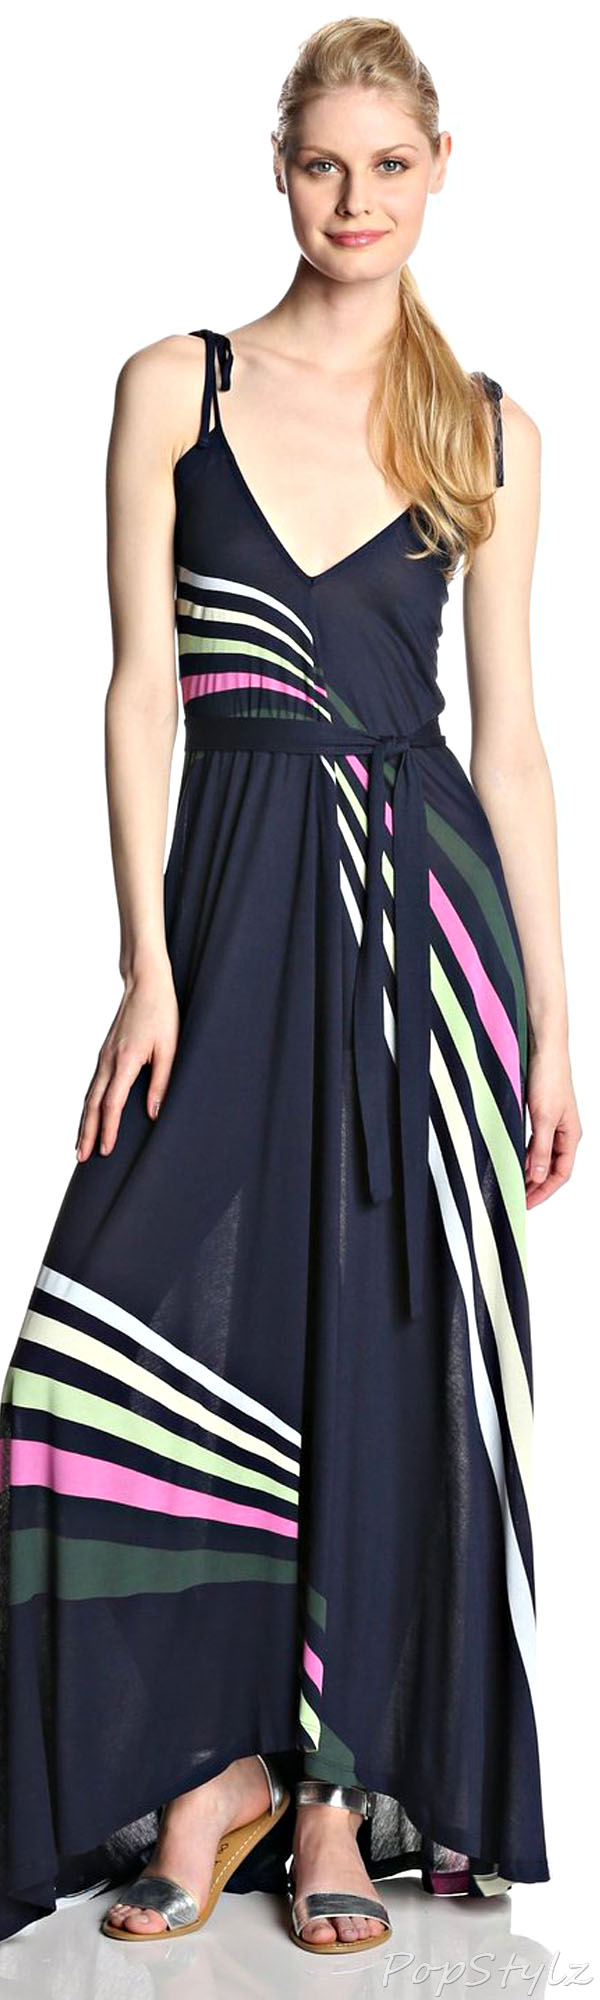 French Connection Rainbow Maxi Dress